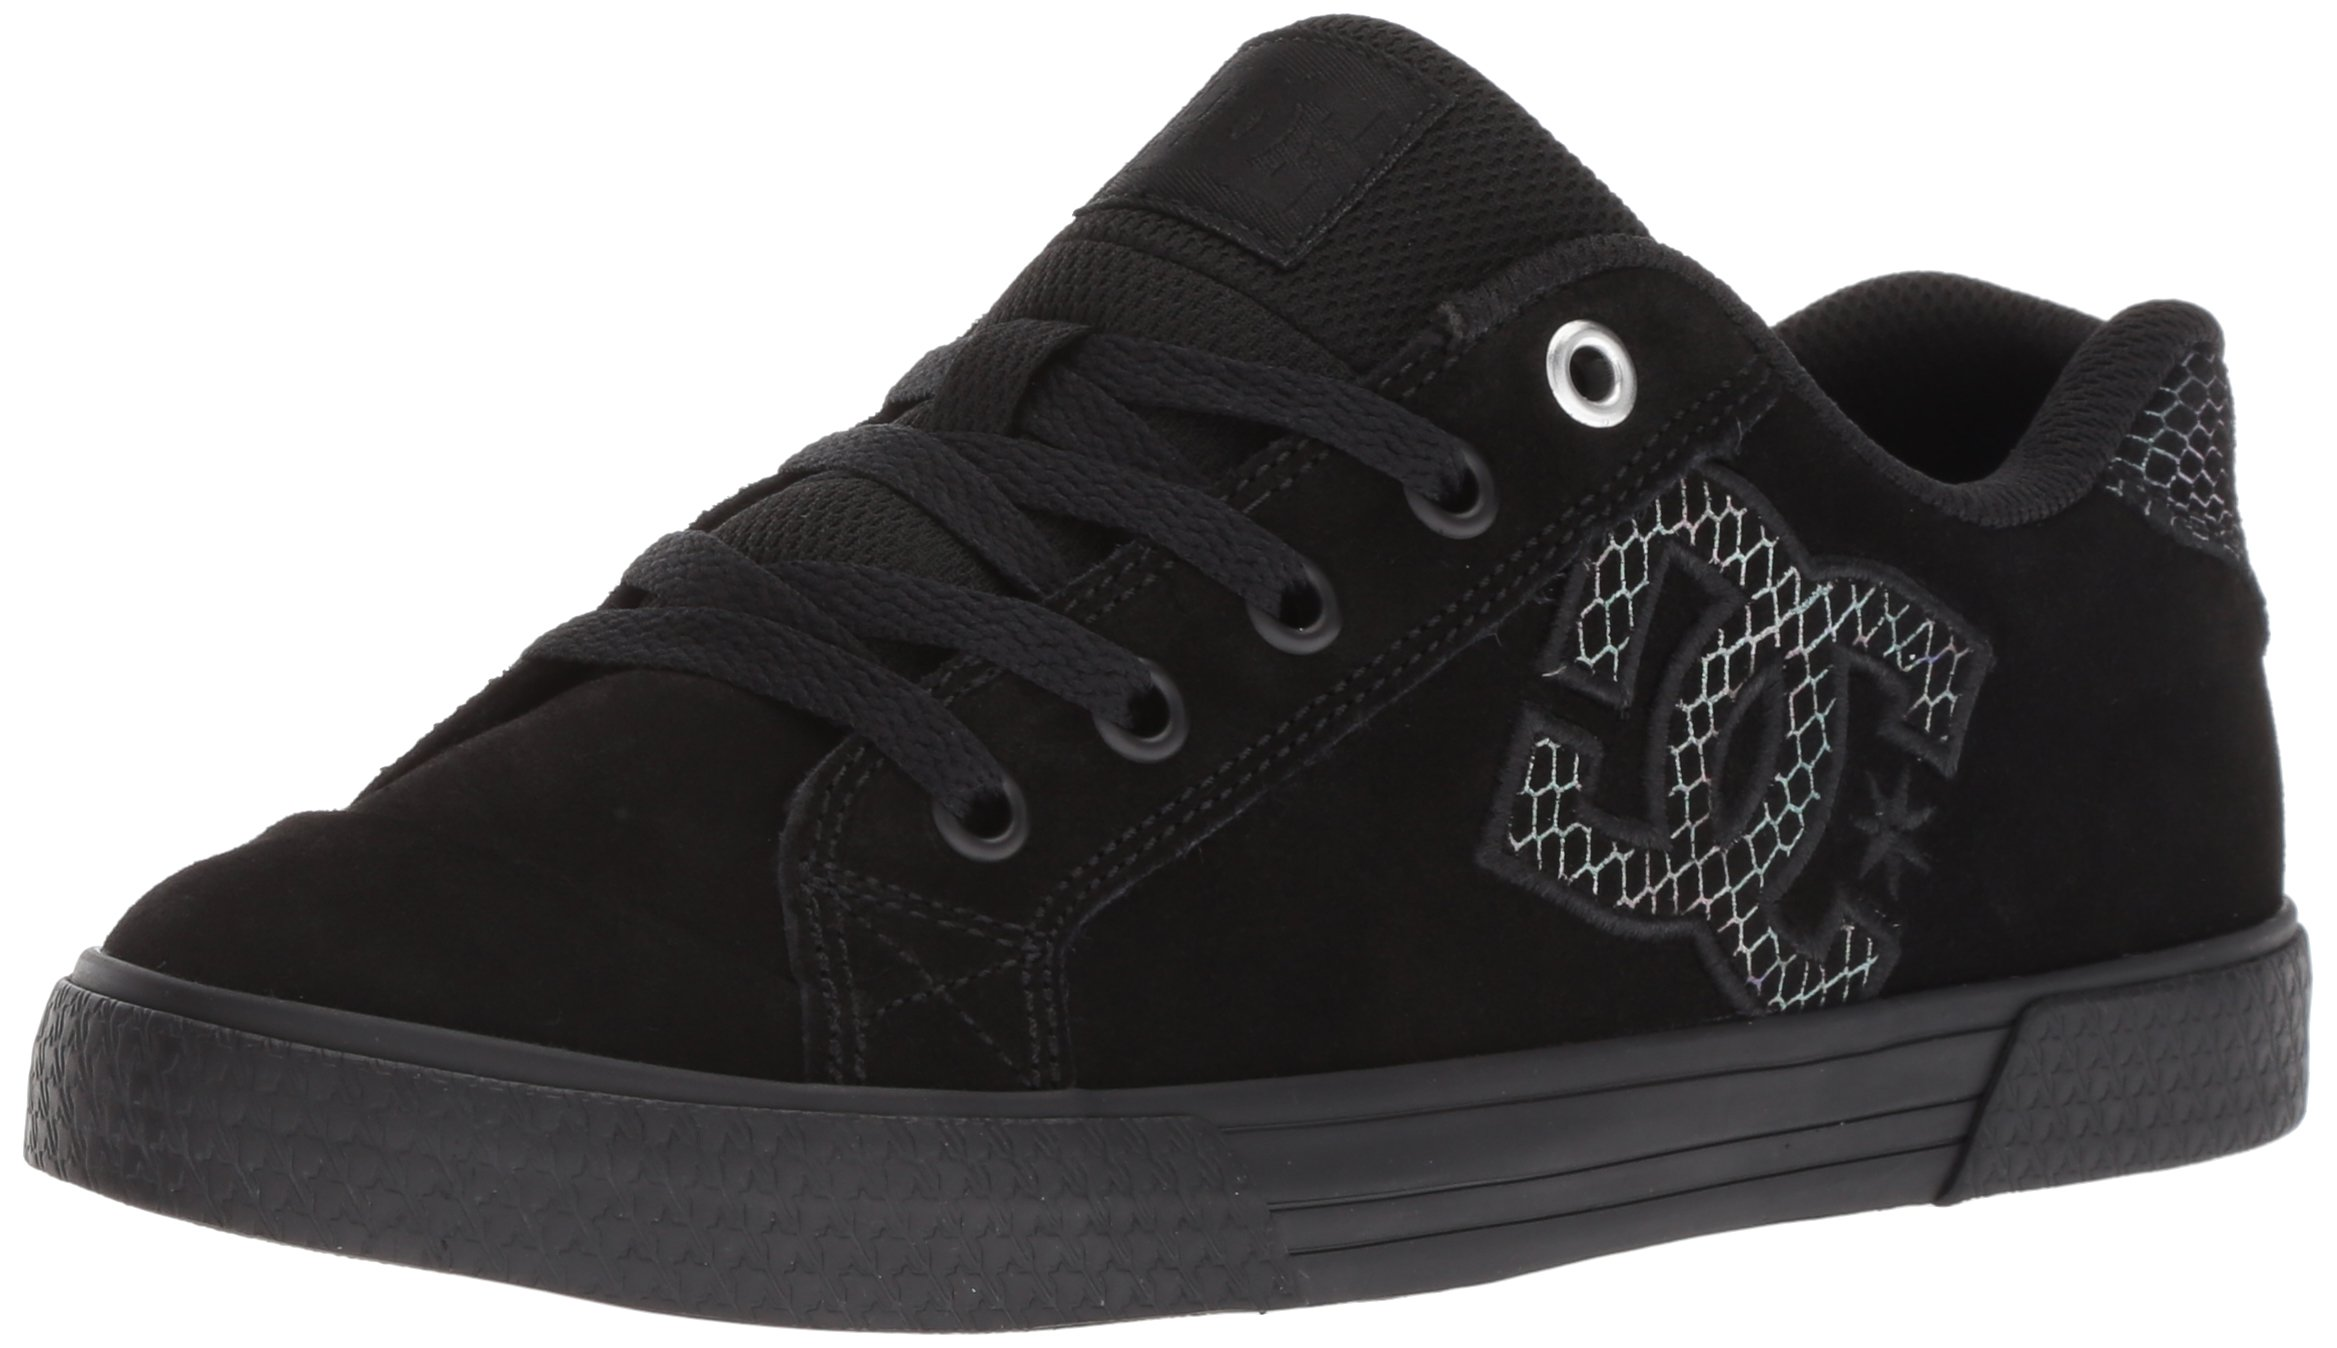 DC Women's Chelsea SE Skate Shoe, Black/Silver/Black, 7 Medium US